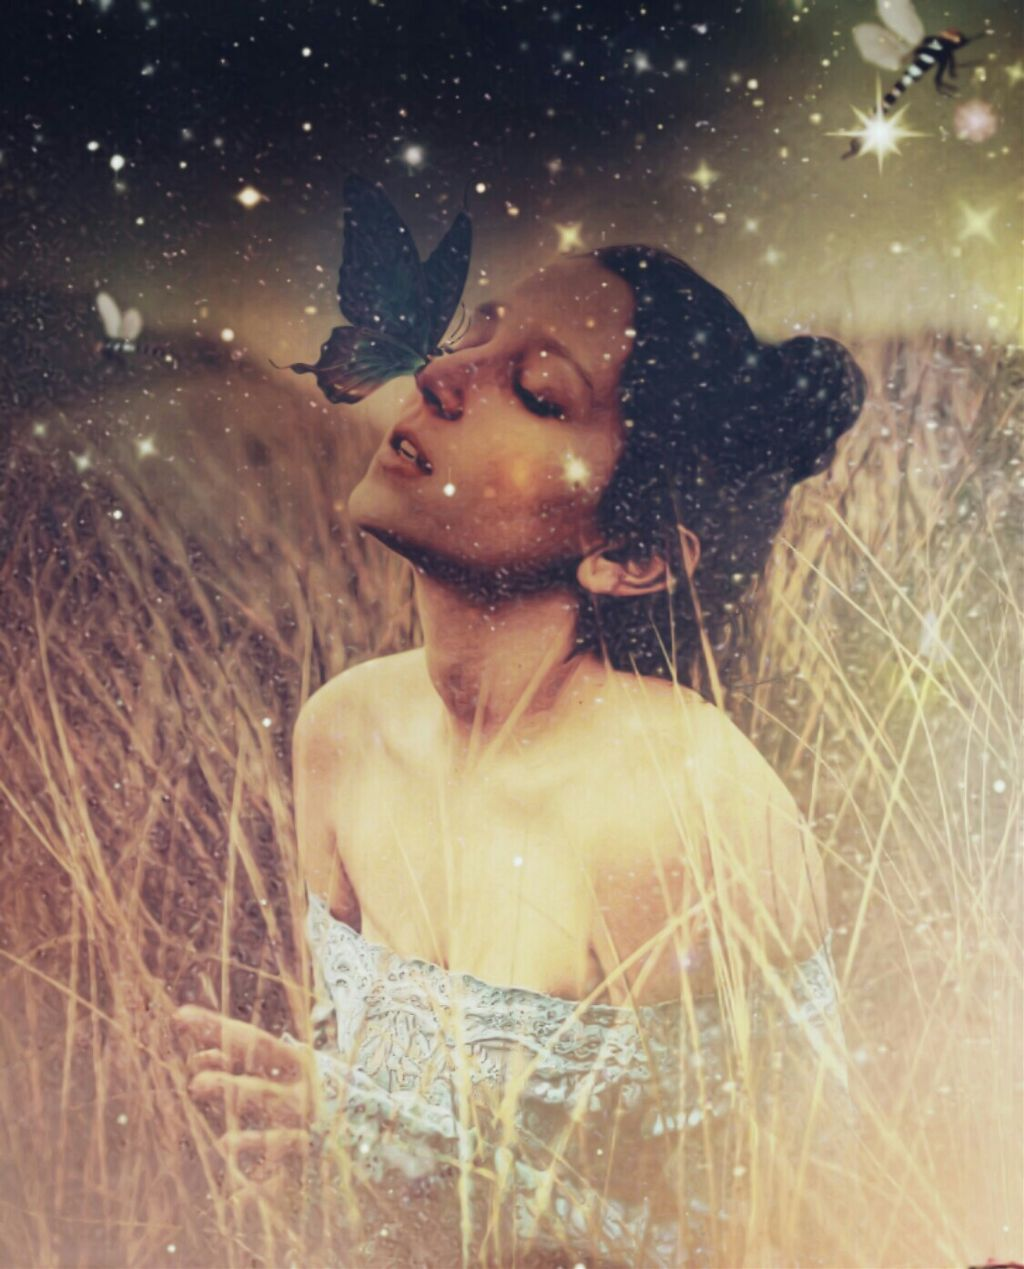 #freetoedit #butterfly #girl #field  🌸🌻🌾🌹✨ When the spirit of nature touches us, our hearts turns into abutterfly.